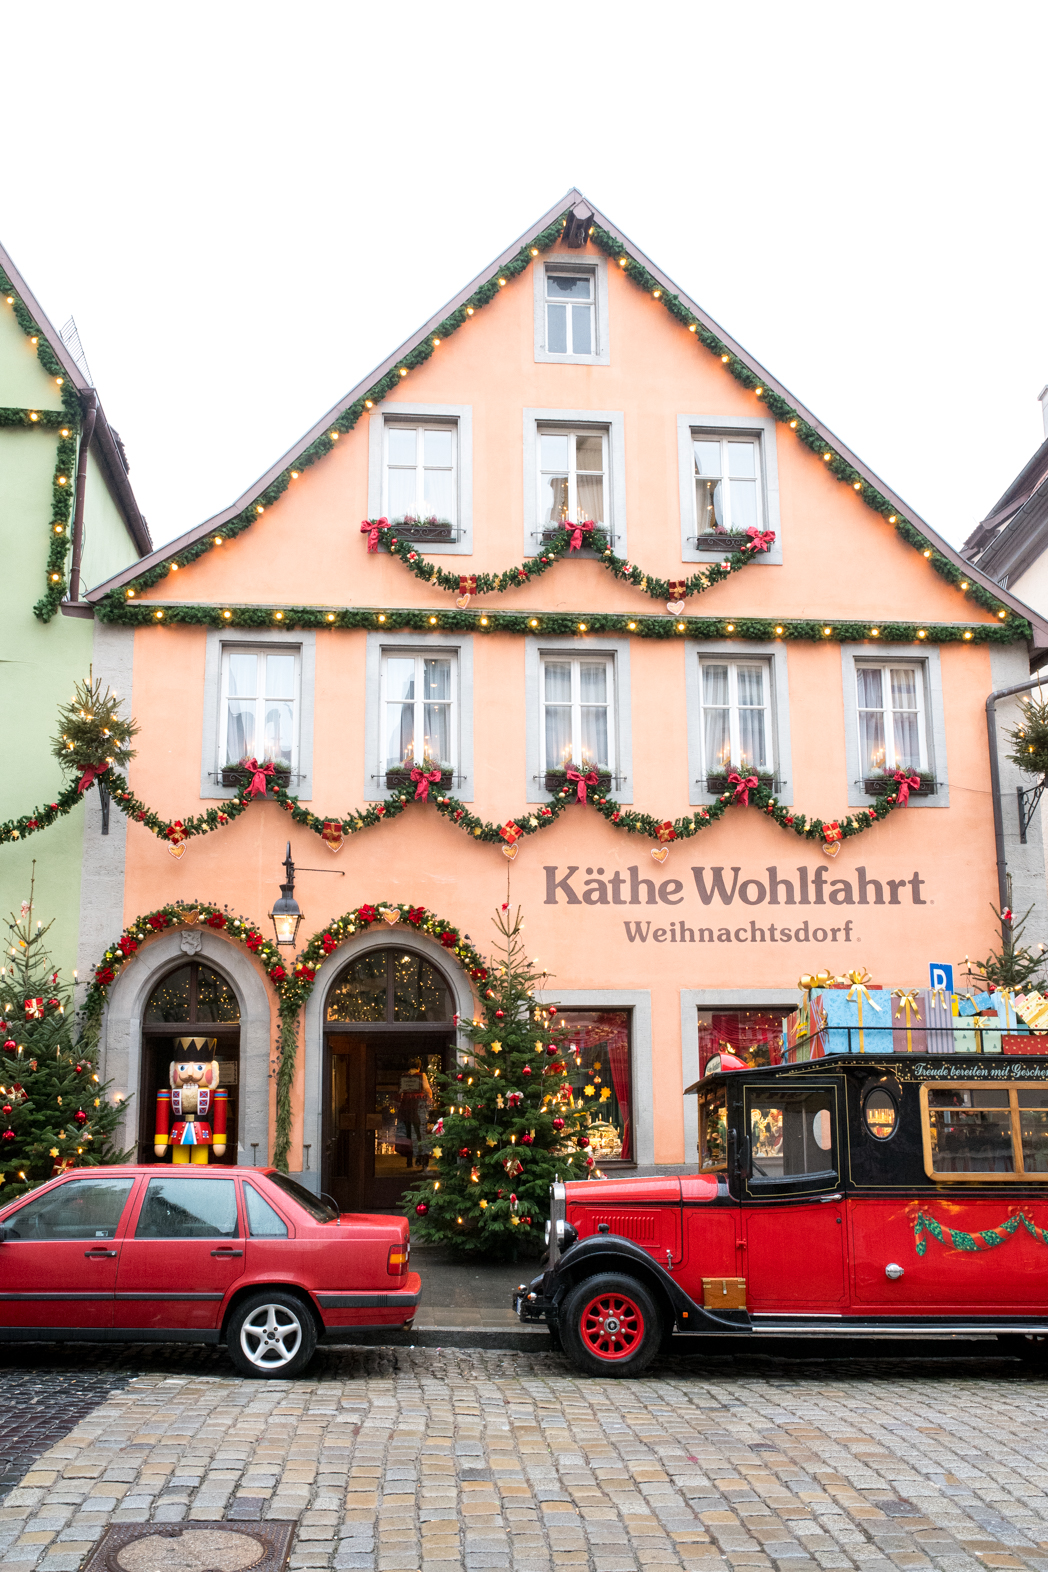 Stacie Flinner Christmas Rothenburg ob der Tauber Germany-10.jpg